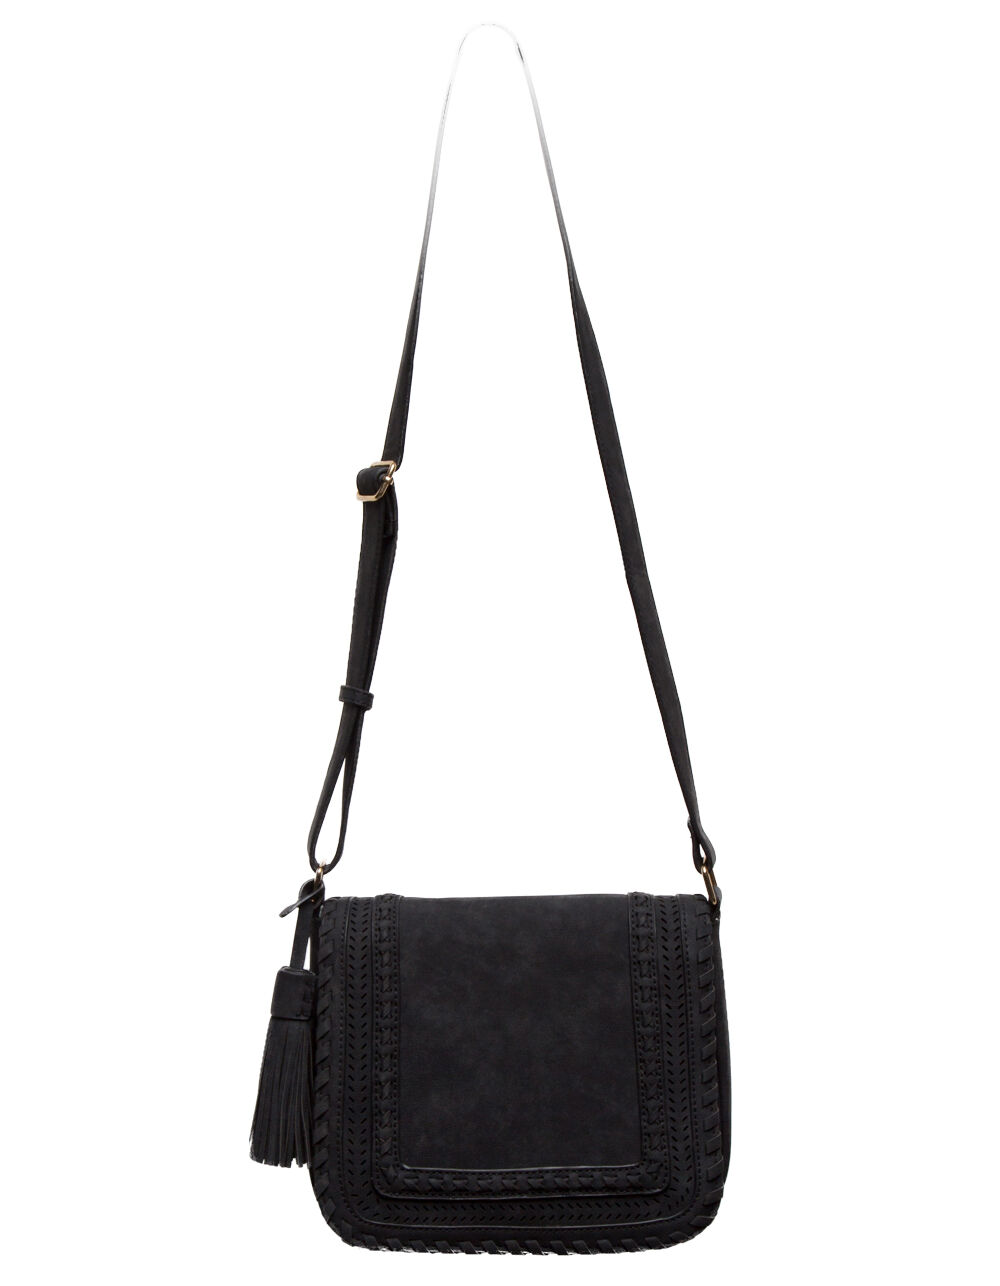 VIOLET RAY KOURTNEY BLACK CROSSBODY BAG